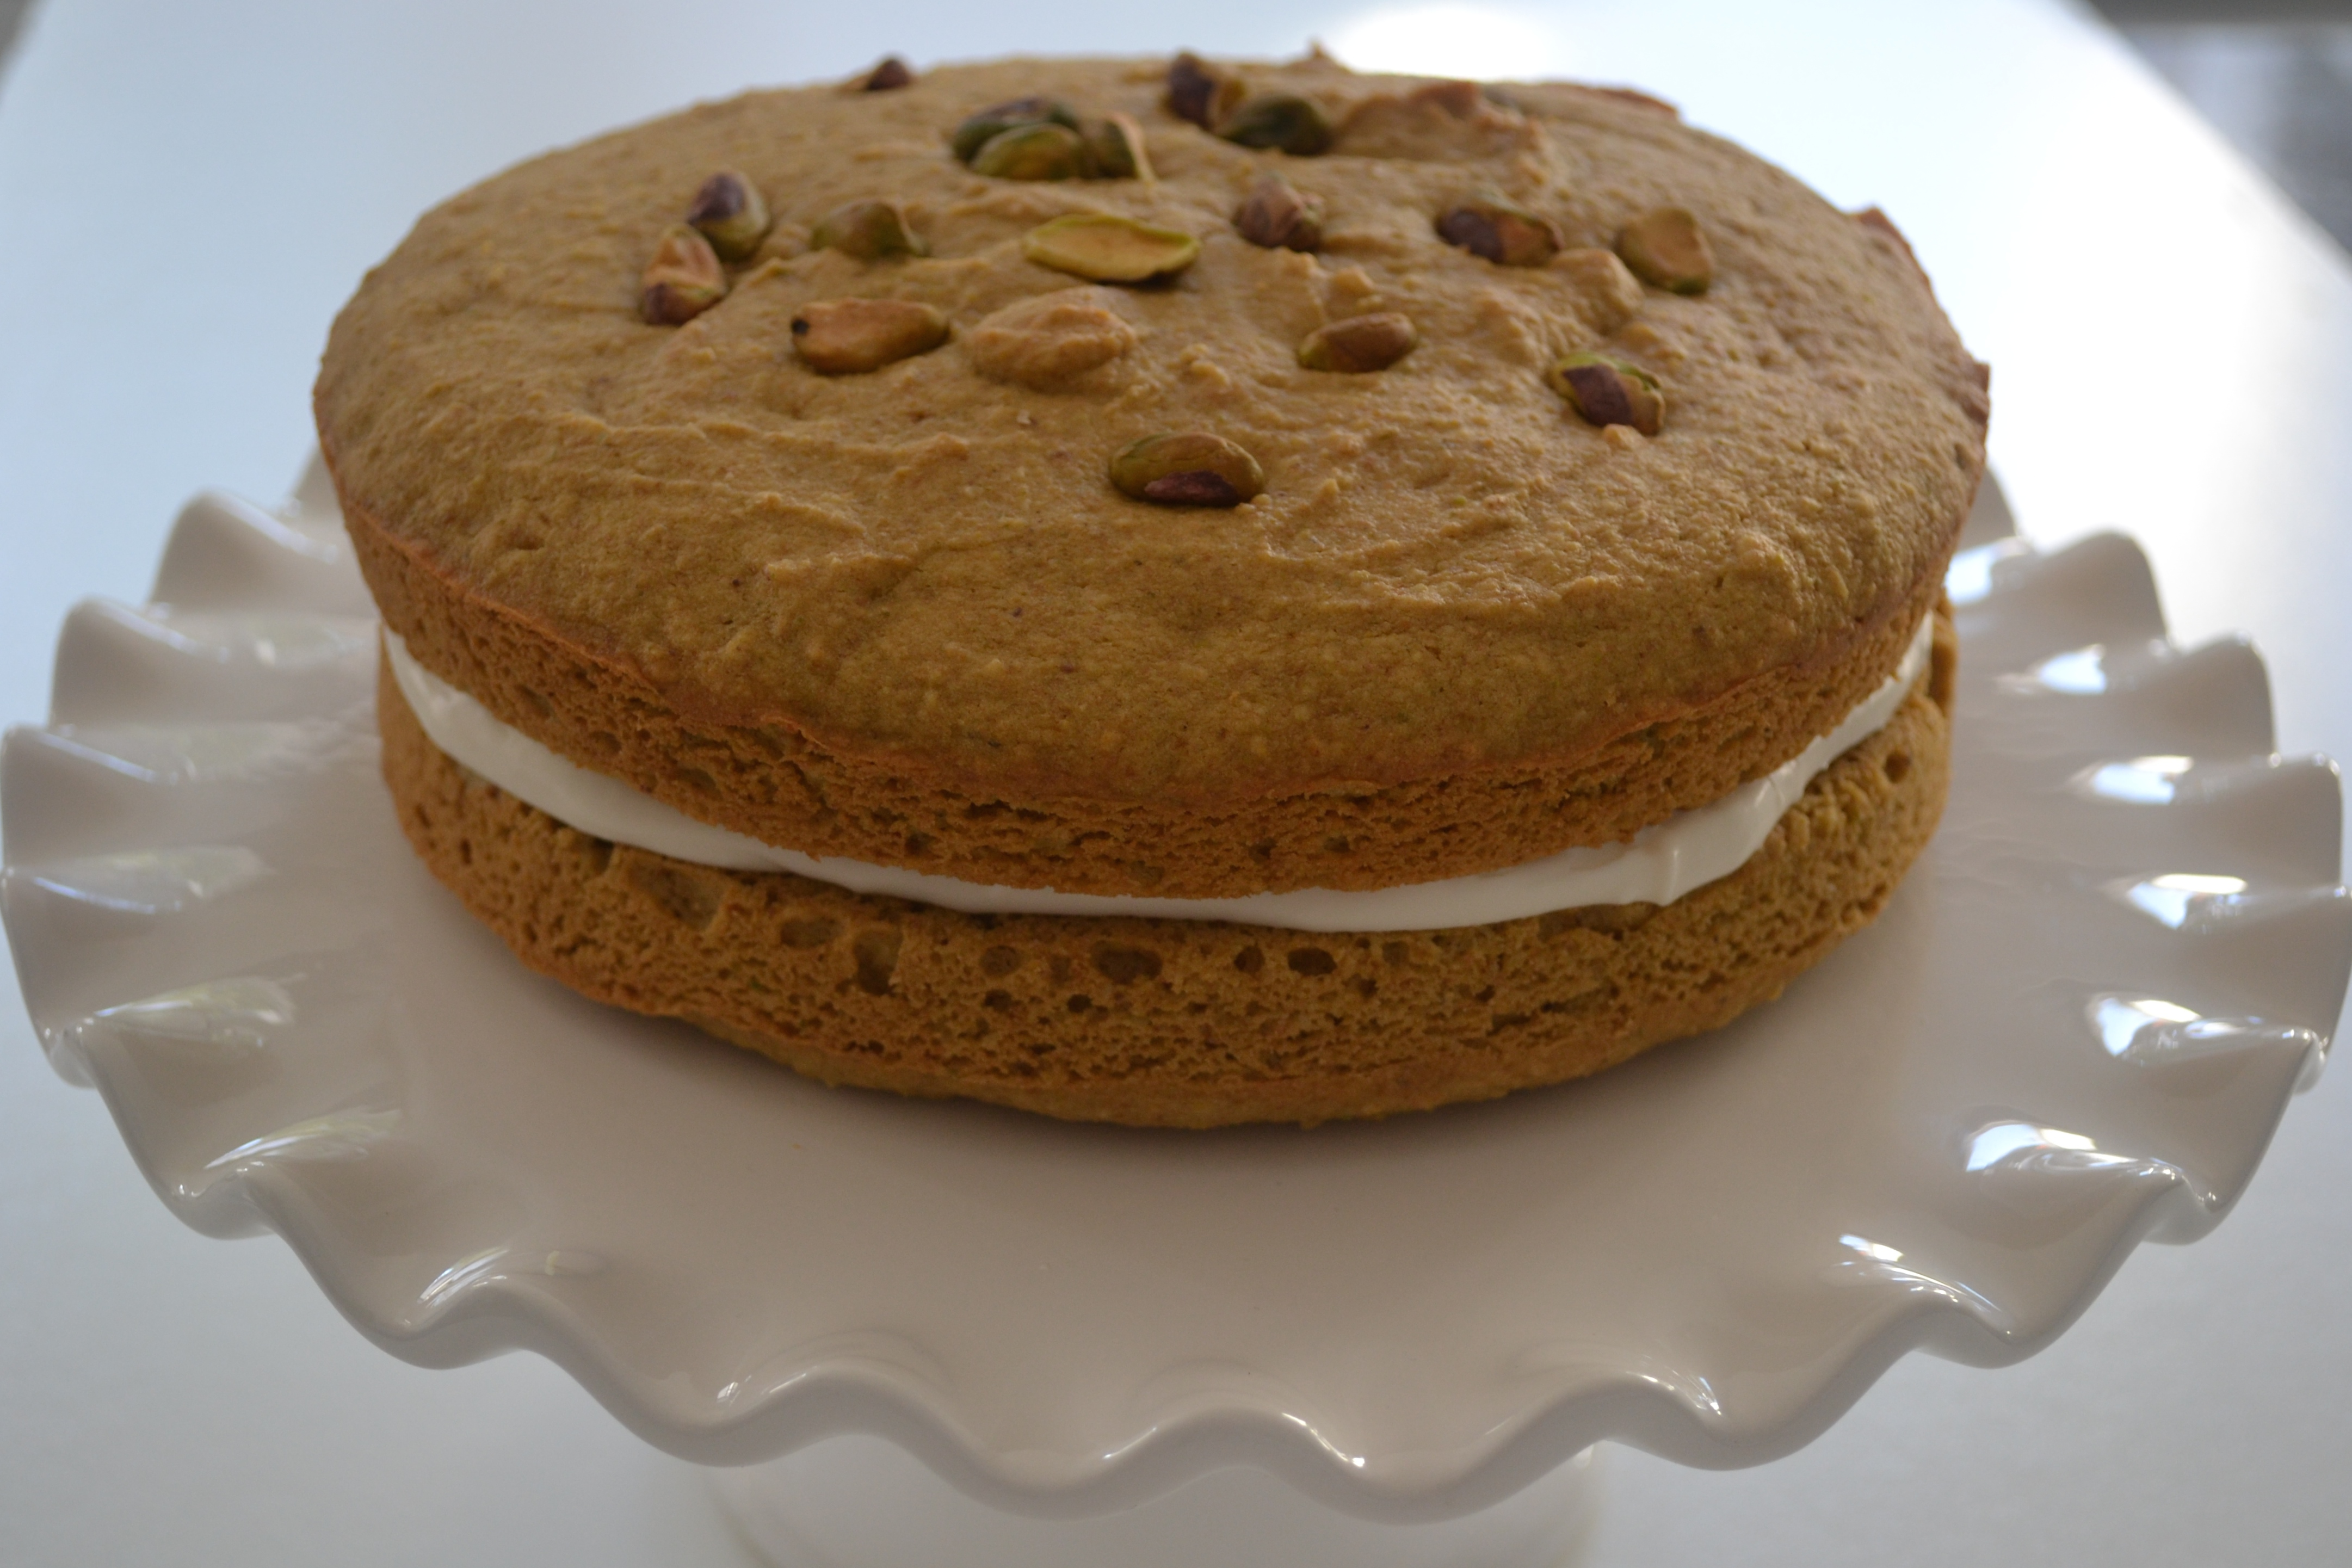 Cake recipes using pistachio paste